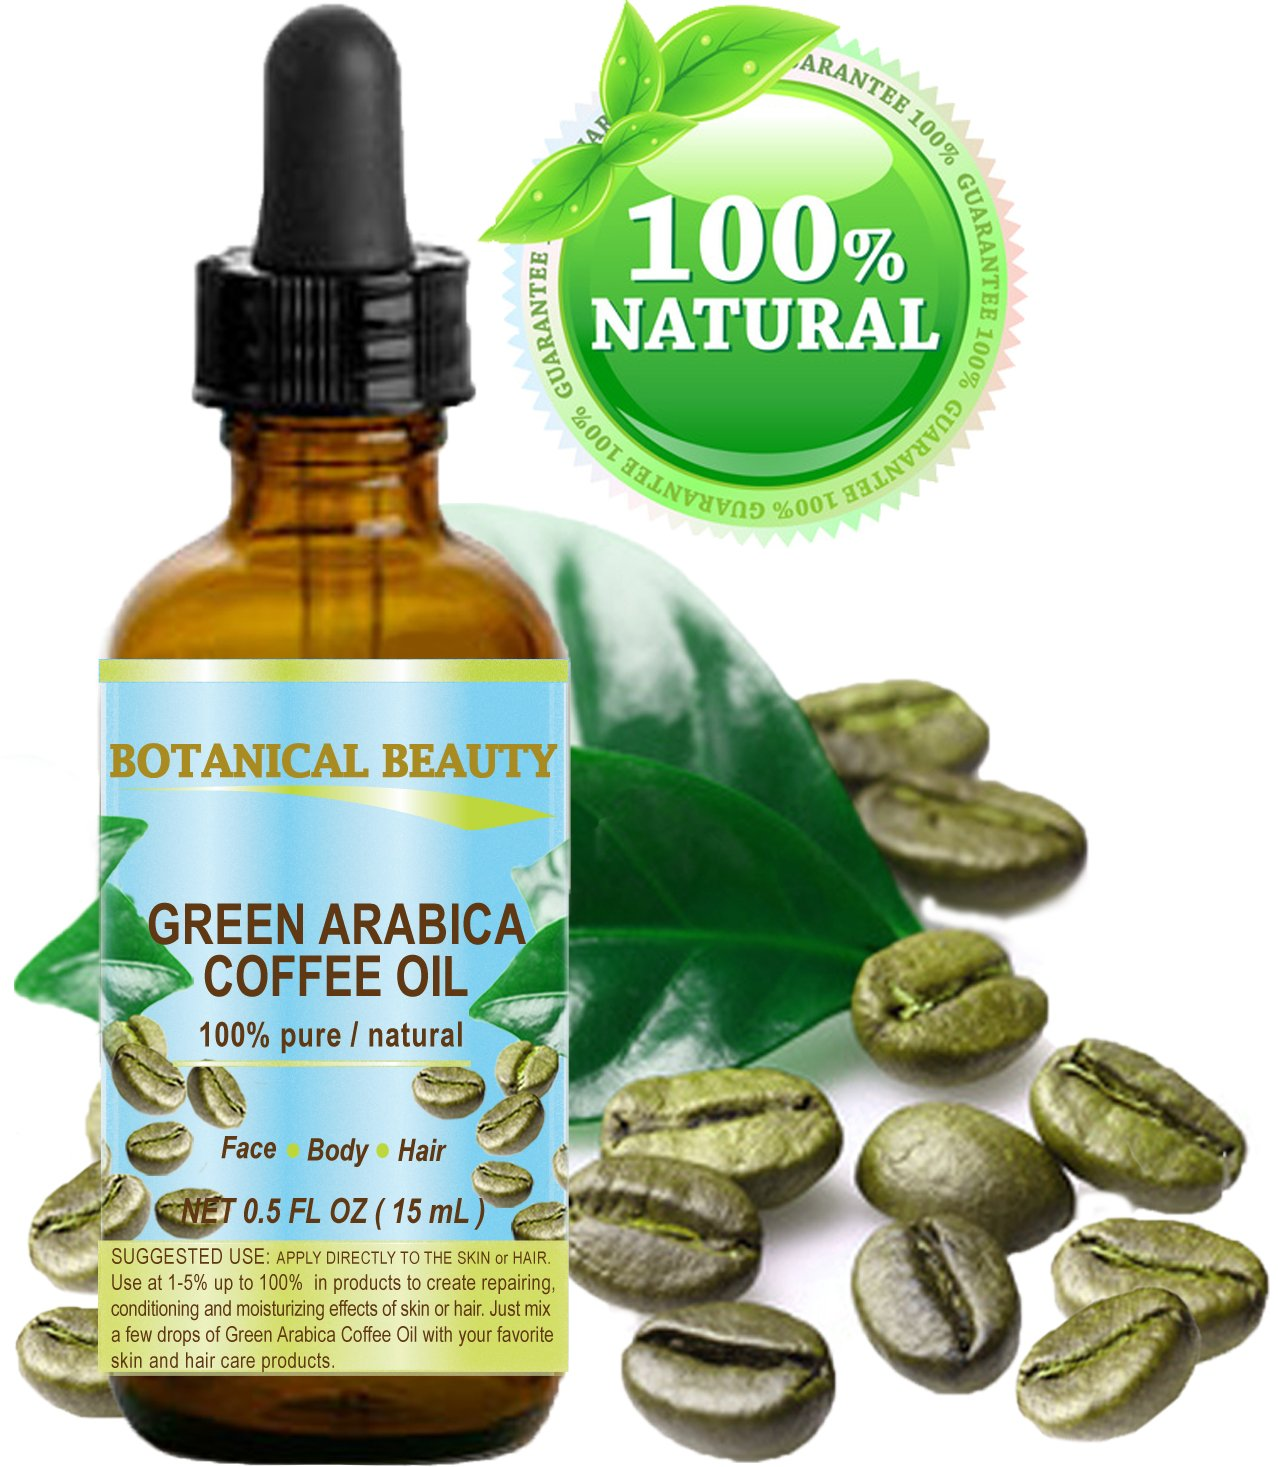 GREEN ARABICA COFFEE OIL Brazilian. 0.5 Fl.oz- 15 ml. 100% Pure/Premium Quality. For Skin, Hair, Lip and Nail Care. Botanical Beauty